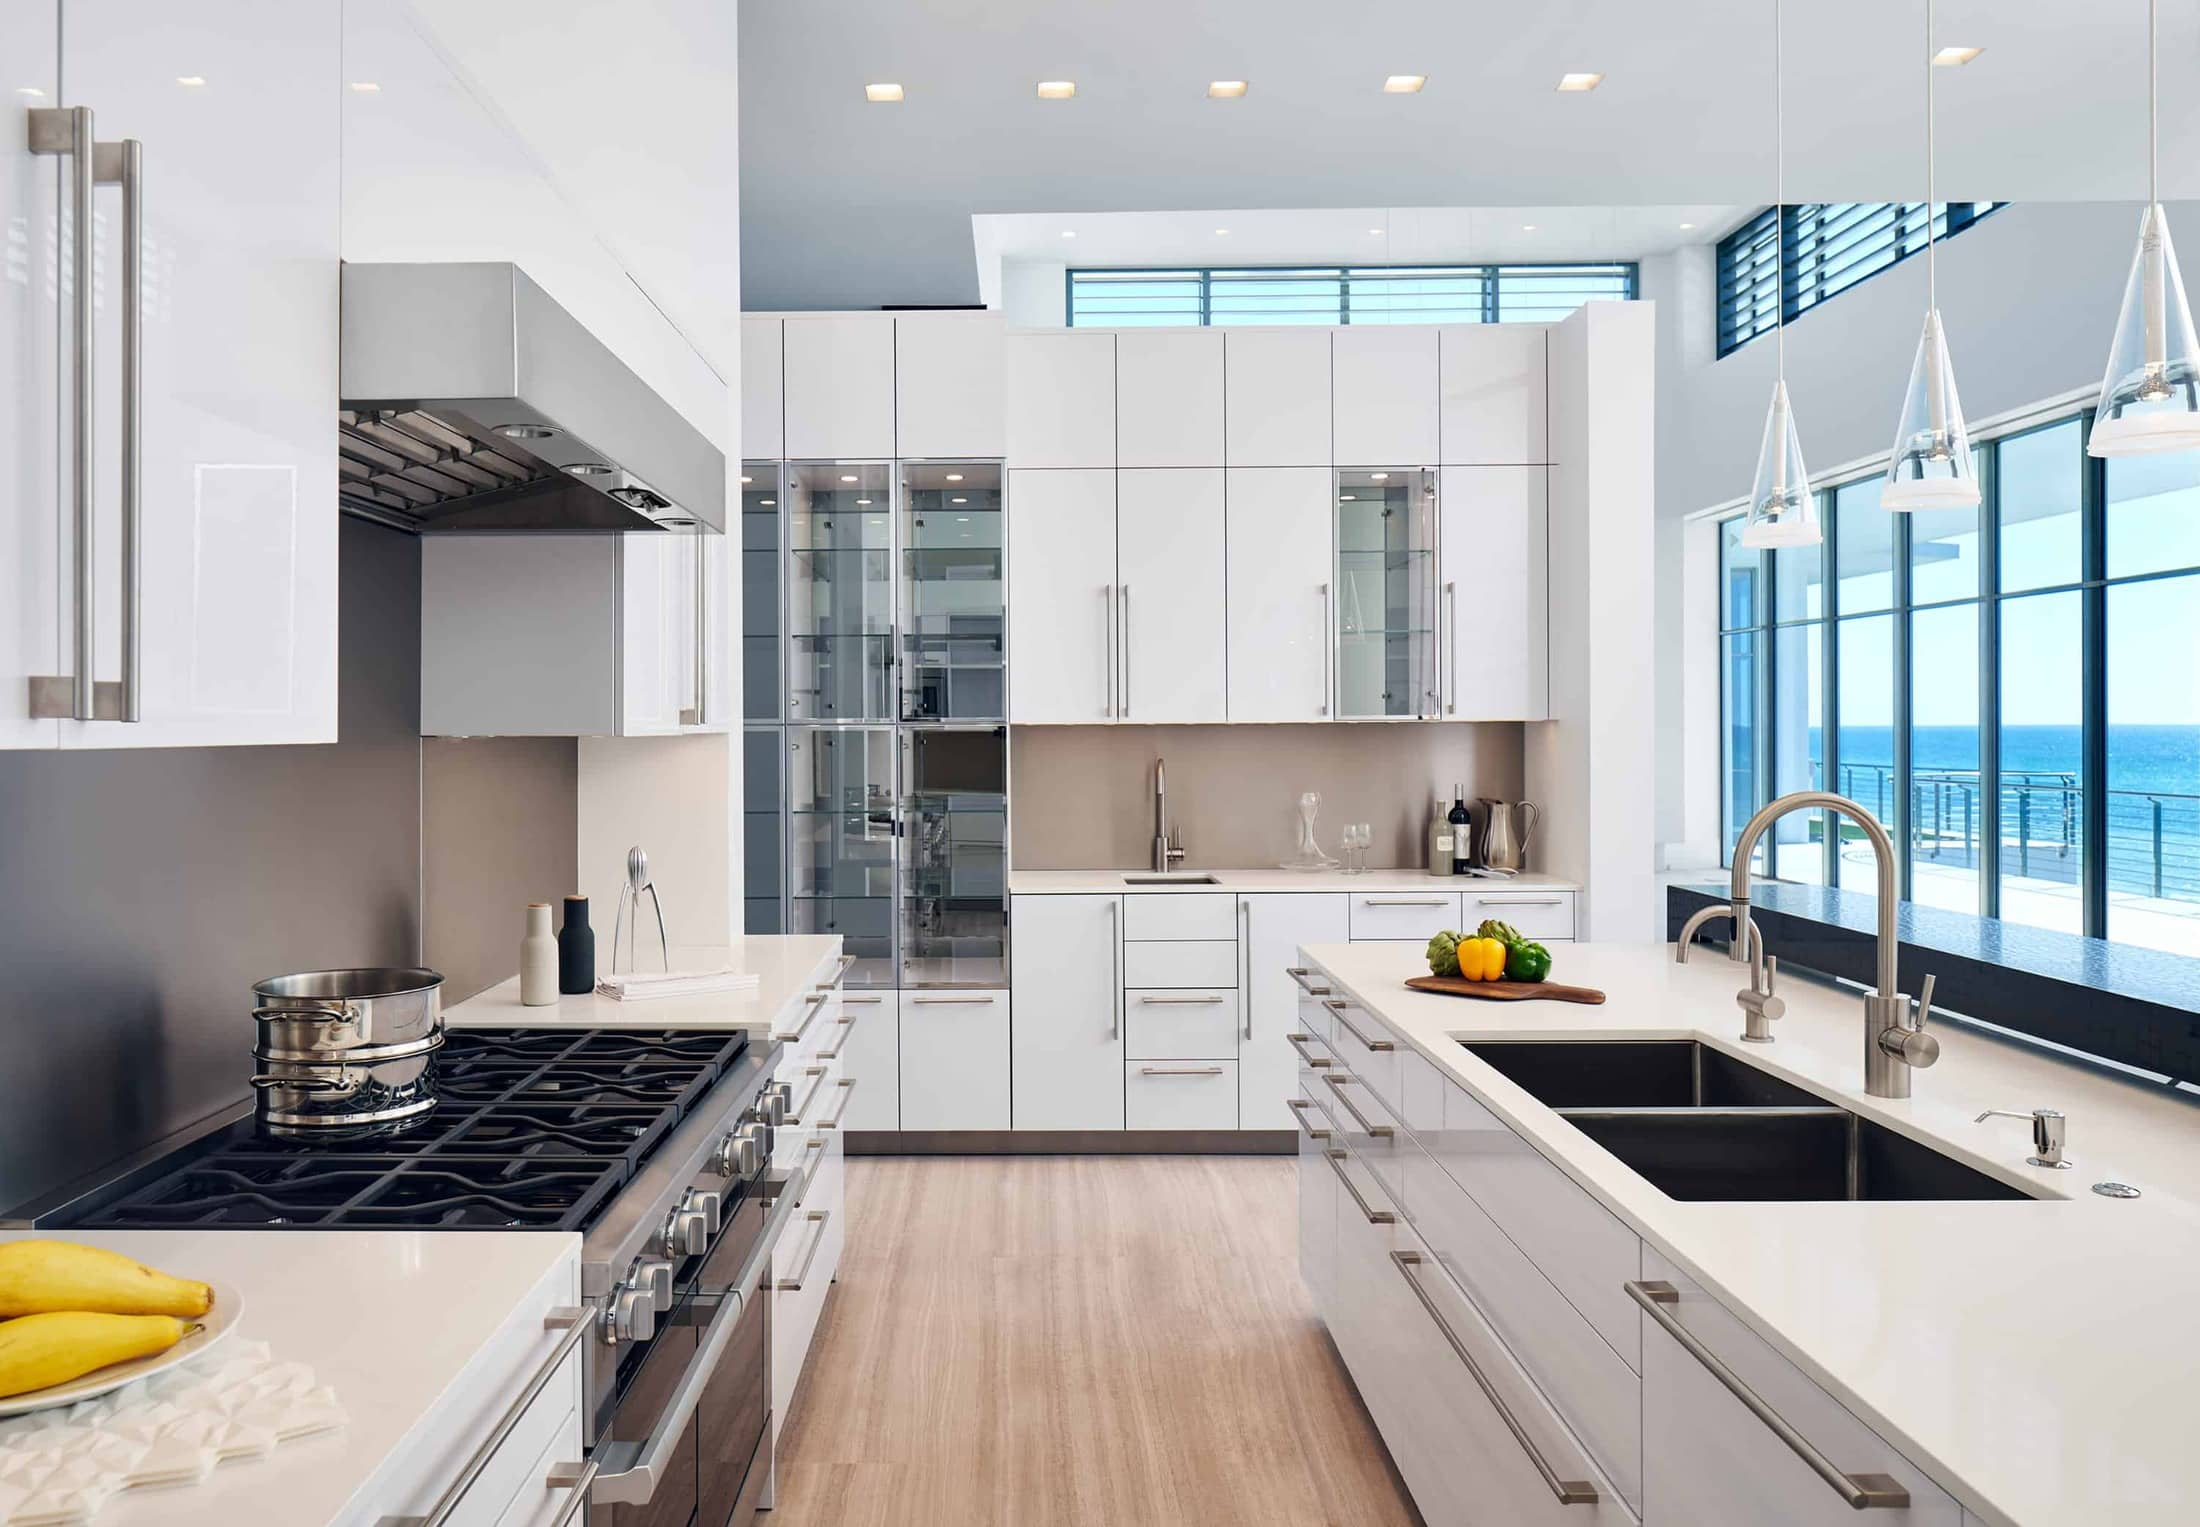 eggersmann-designed modern german kitchen in high gloss white with glass fronts